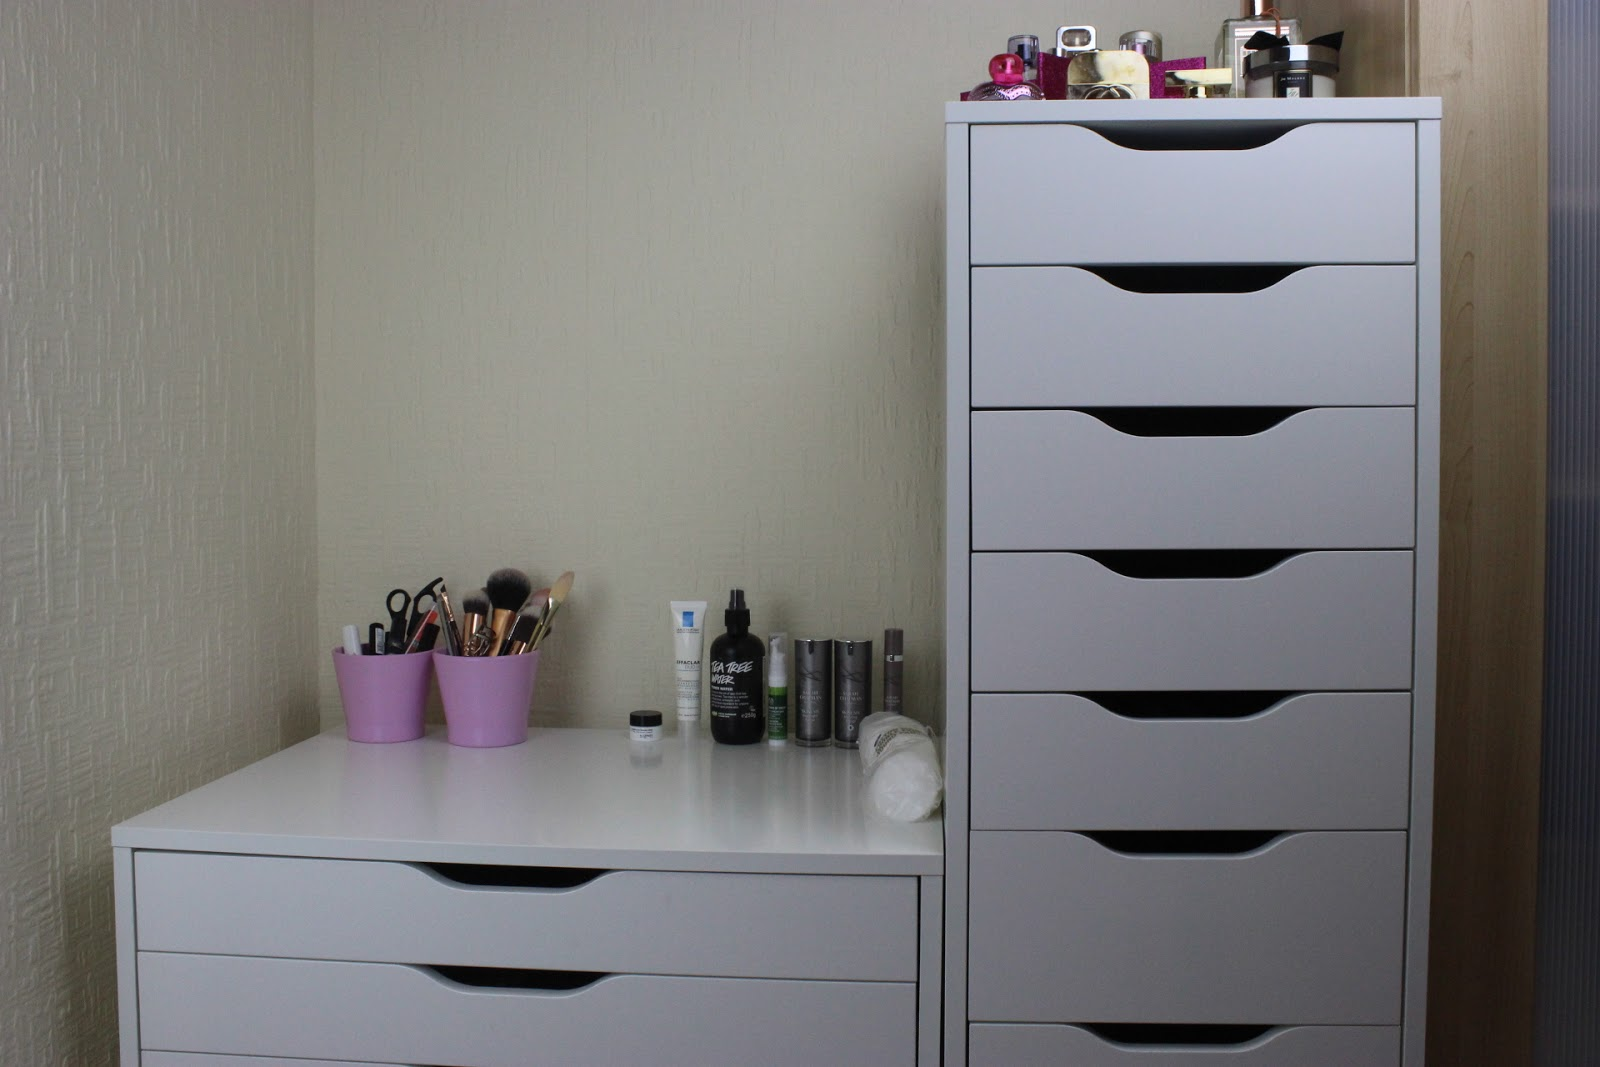 Ikea Alex Makeup Storage Home Design Ideas And Pictures: makeup drawer organizer ikea